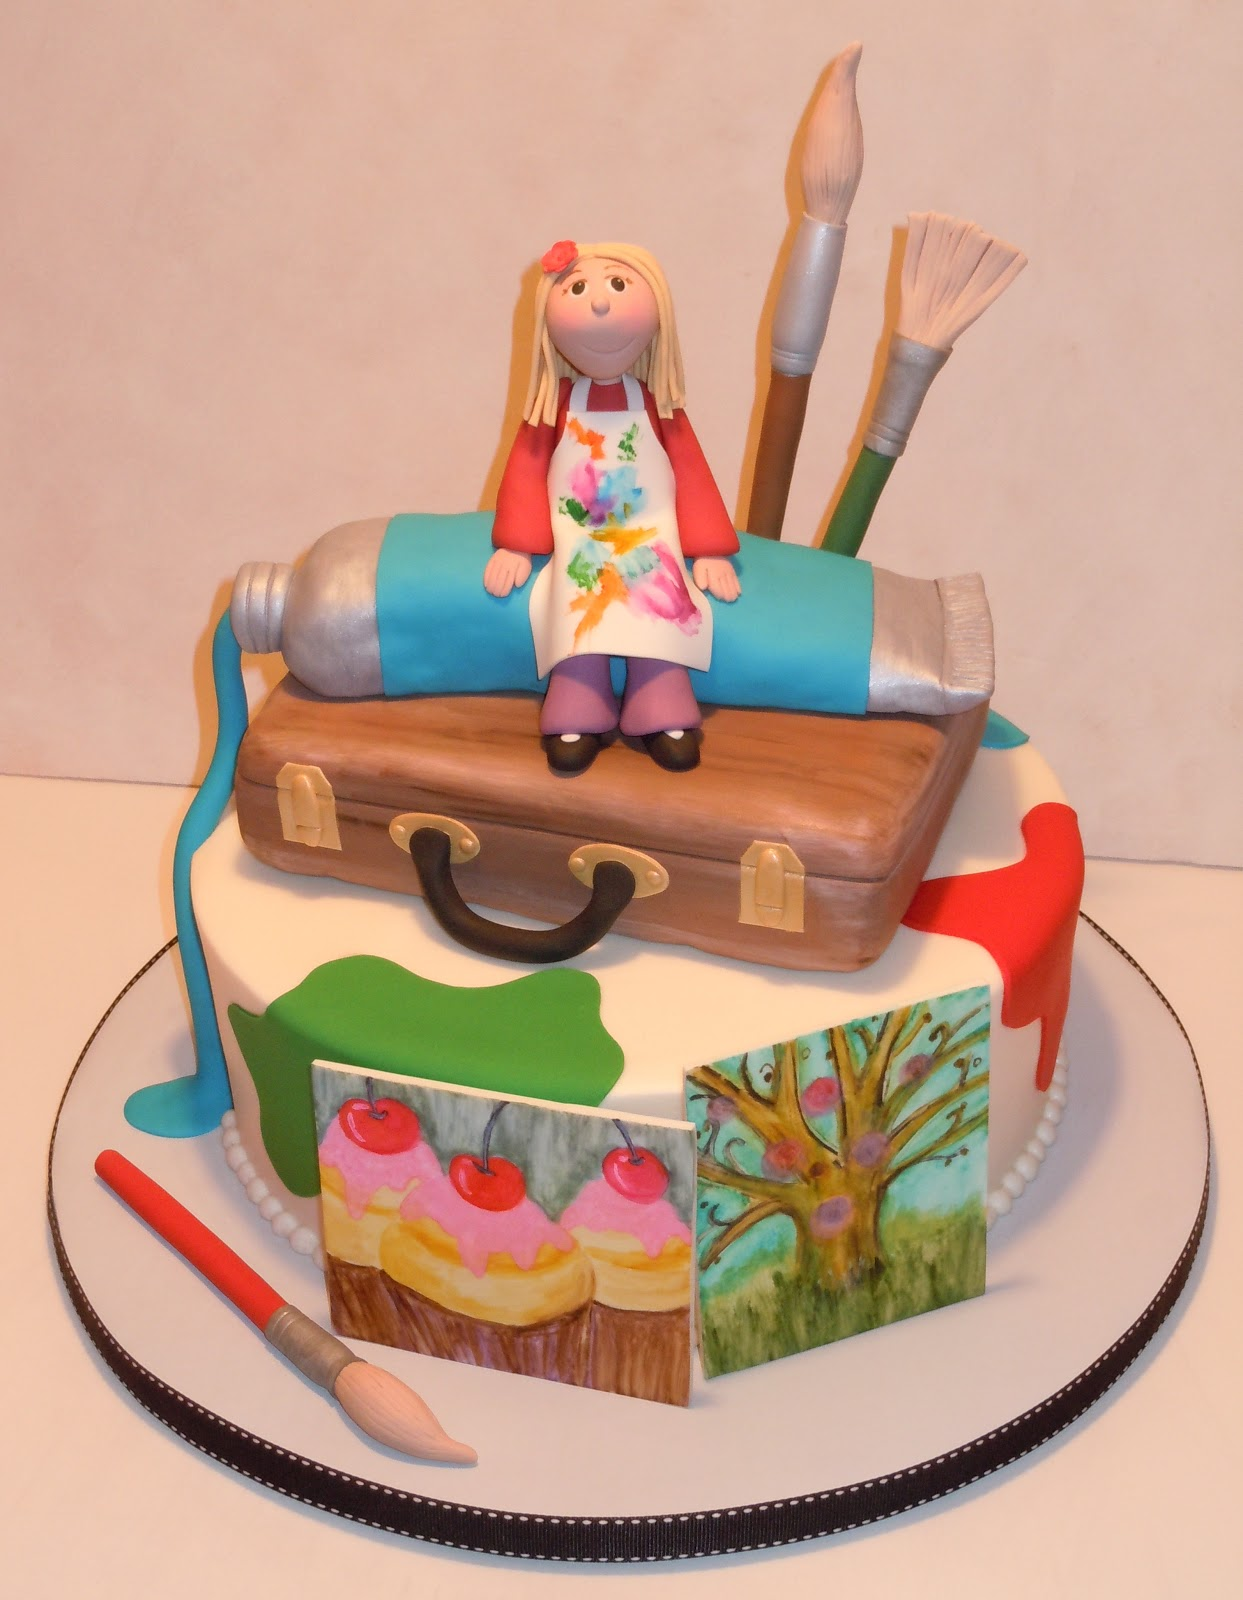 Cake Artist Cakes : Kids Birthday cakes on Pinterest Rainbow Cakes, Artist ...